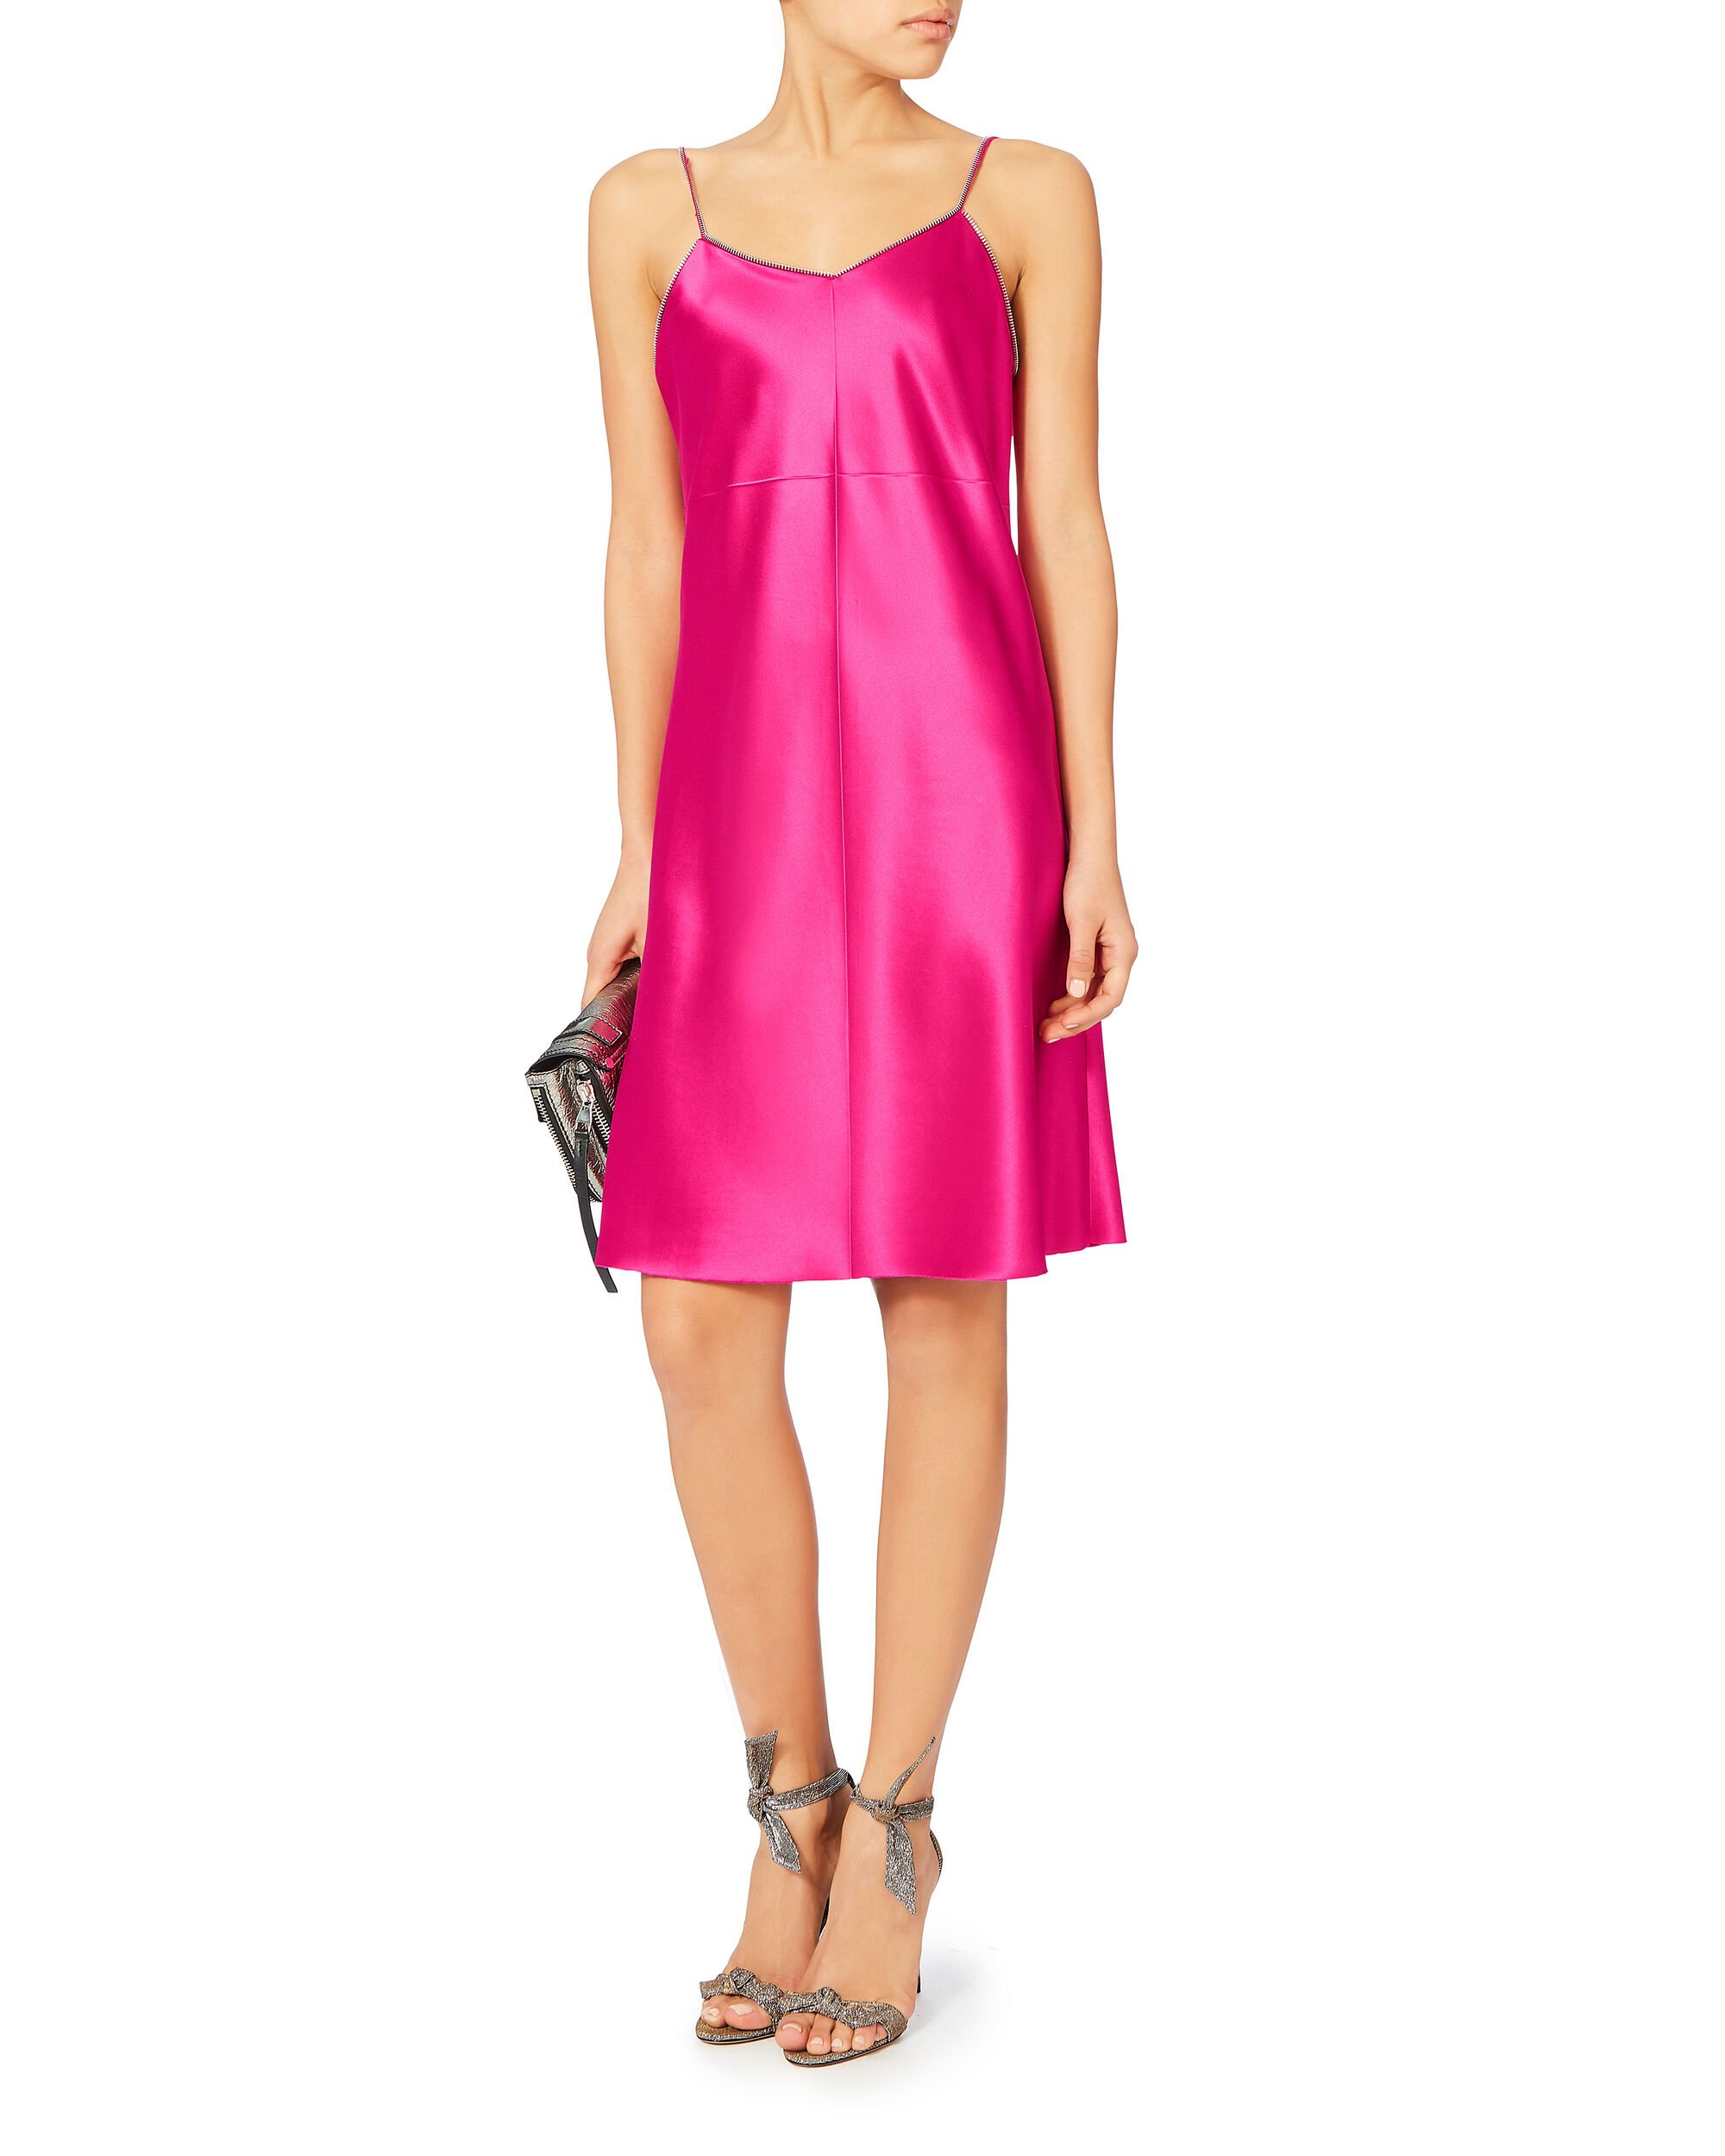 Zip Strap Pink Slip Dress, PINK, hi-res